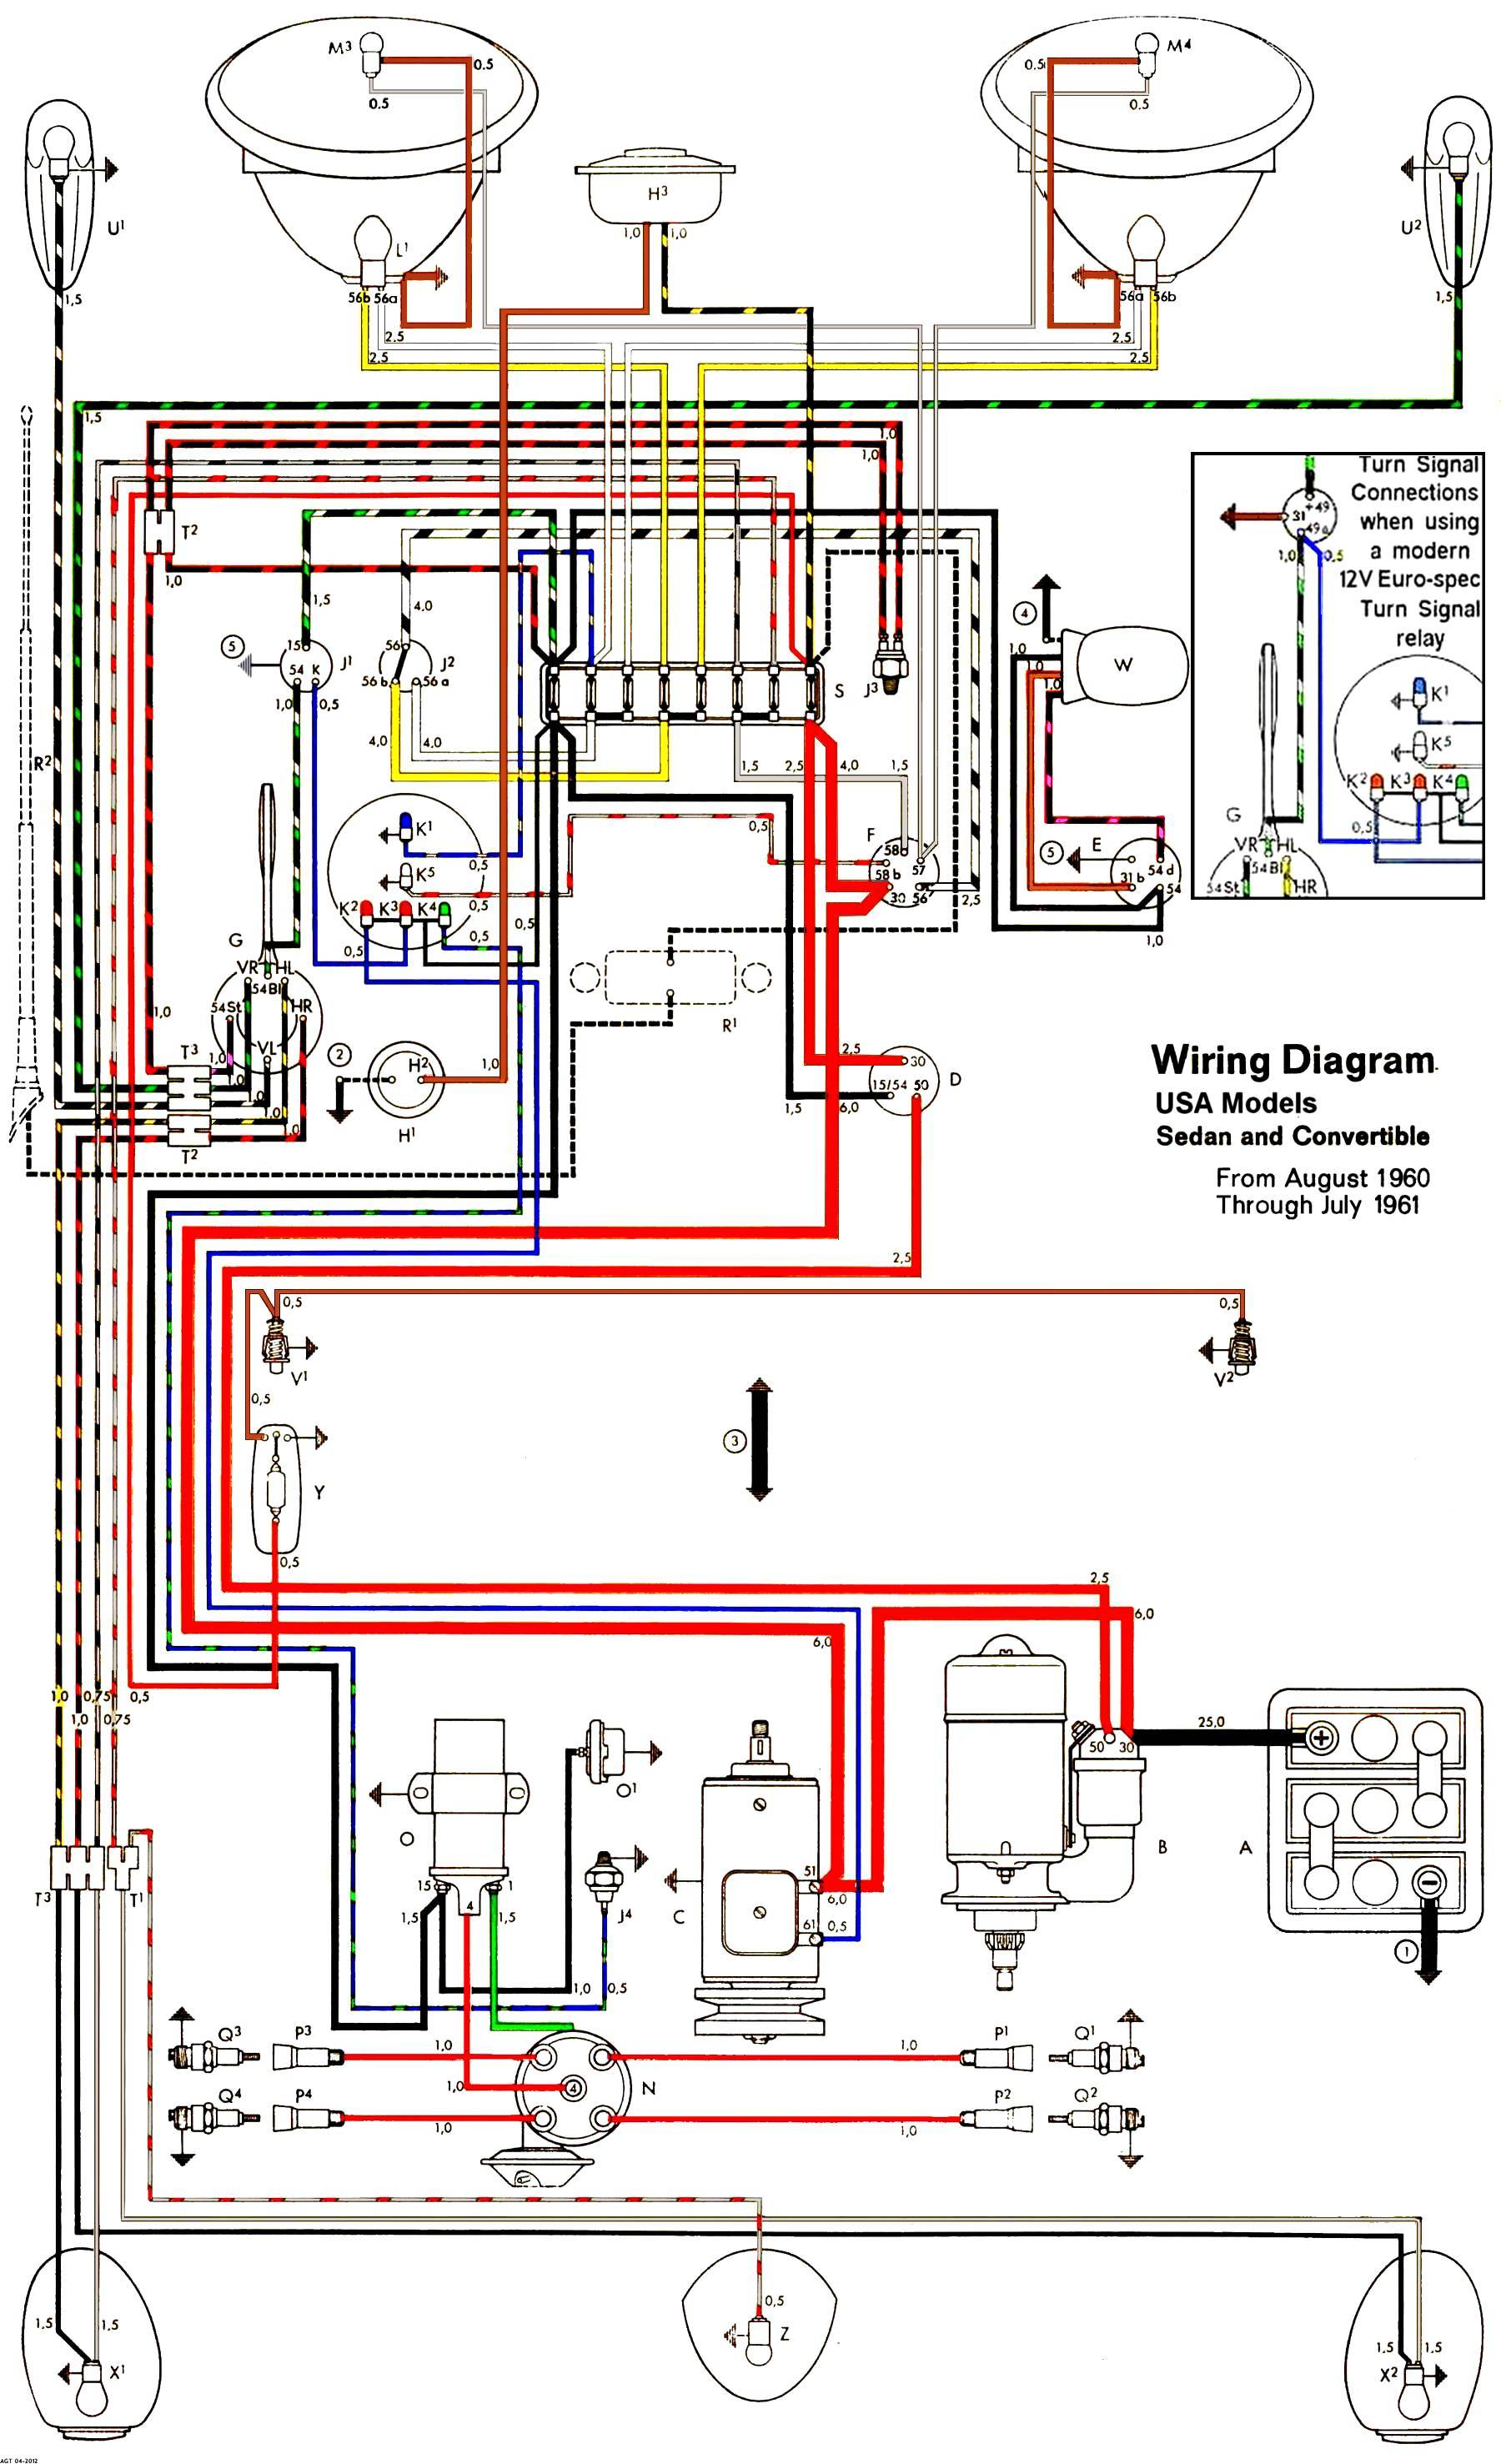 1961USA T1 thesamba com type 1 wiring diagrams VW Alternator Hook Up at virtualis.co